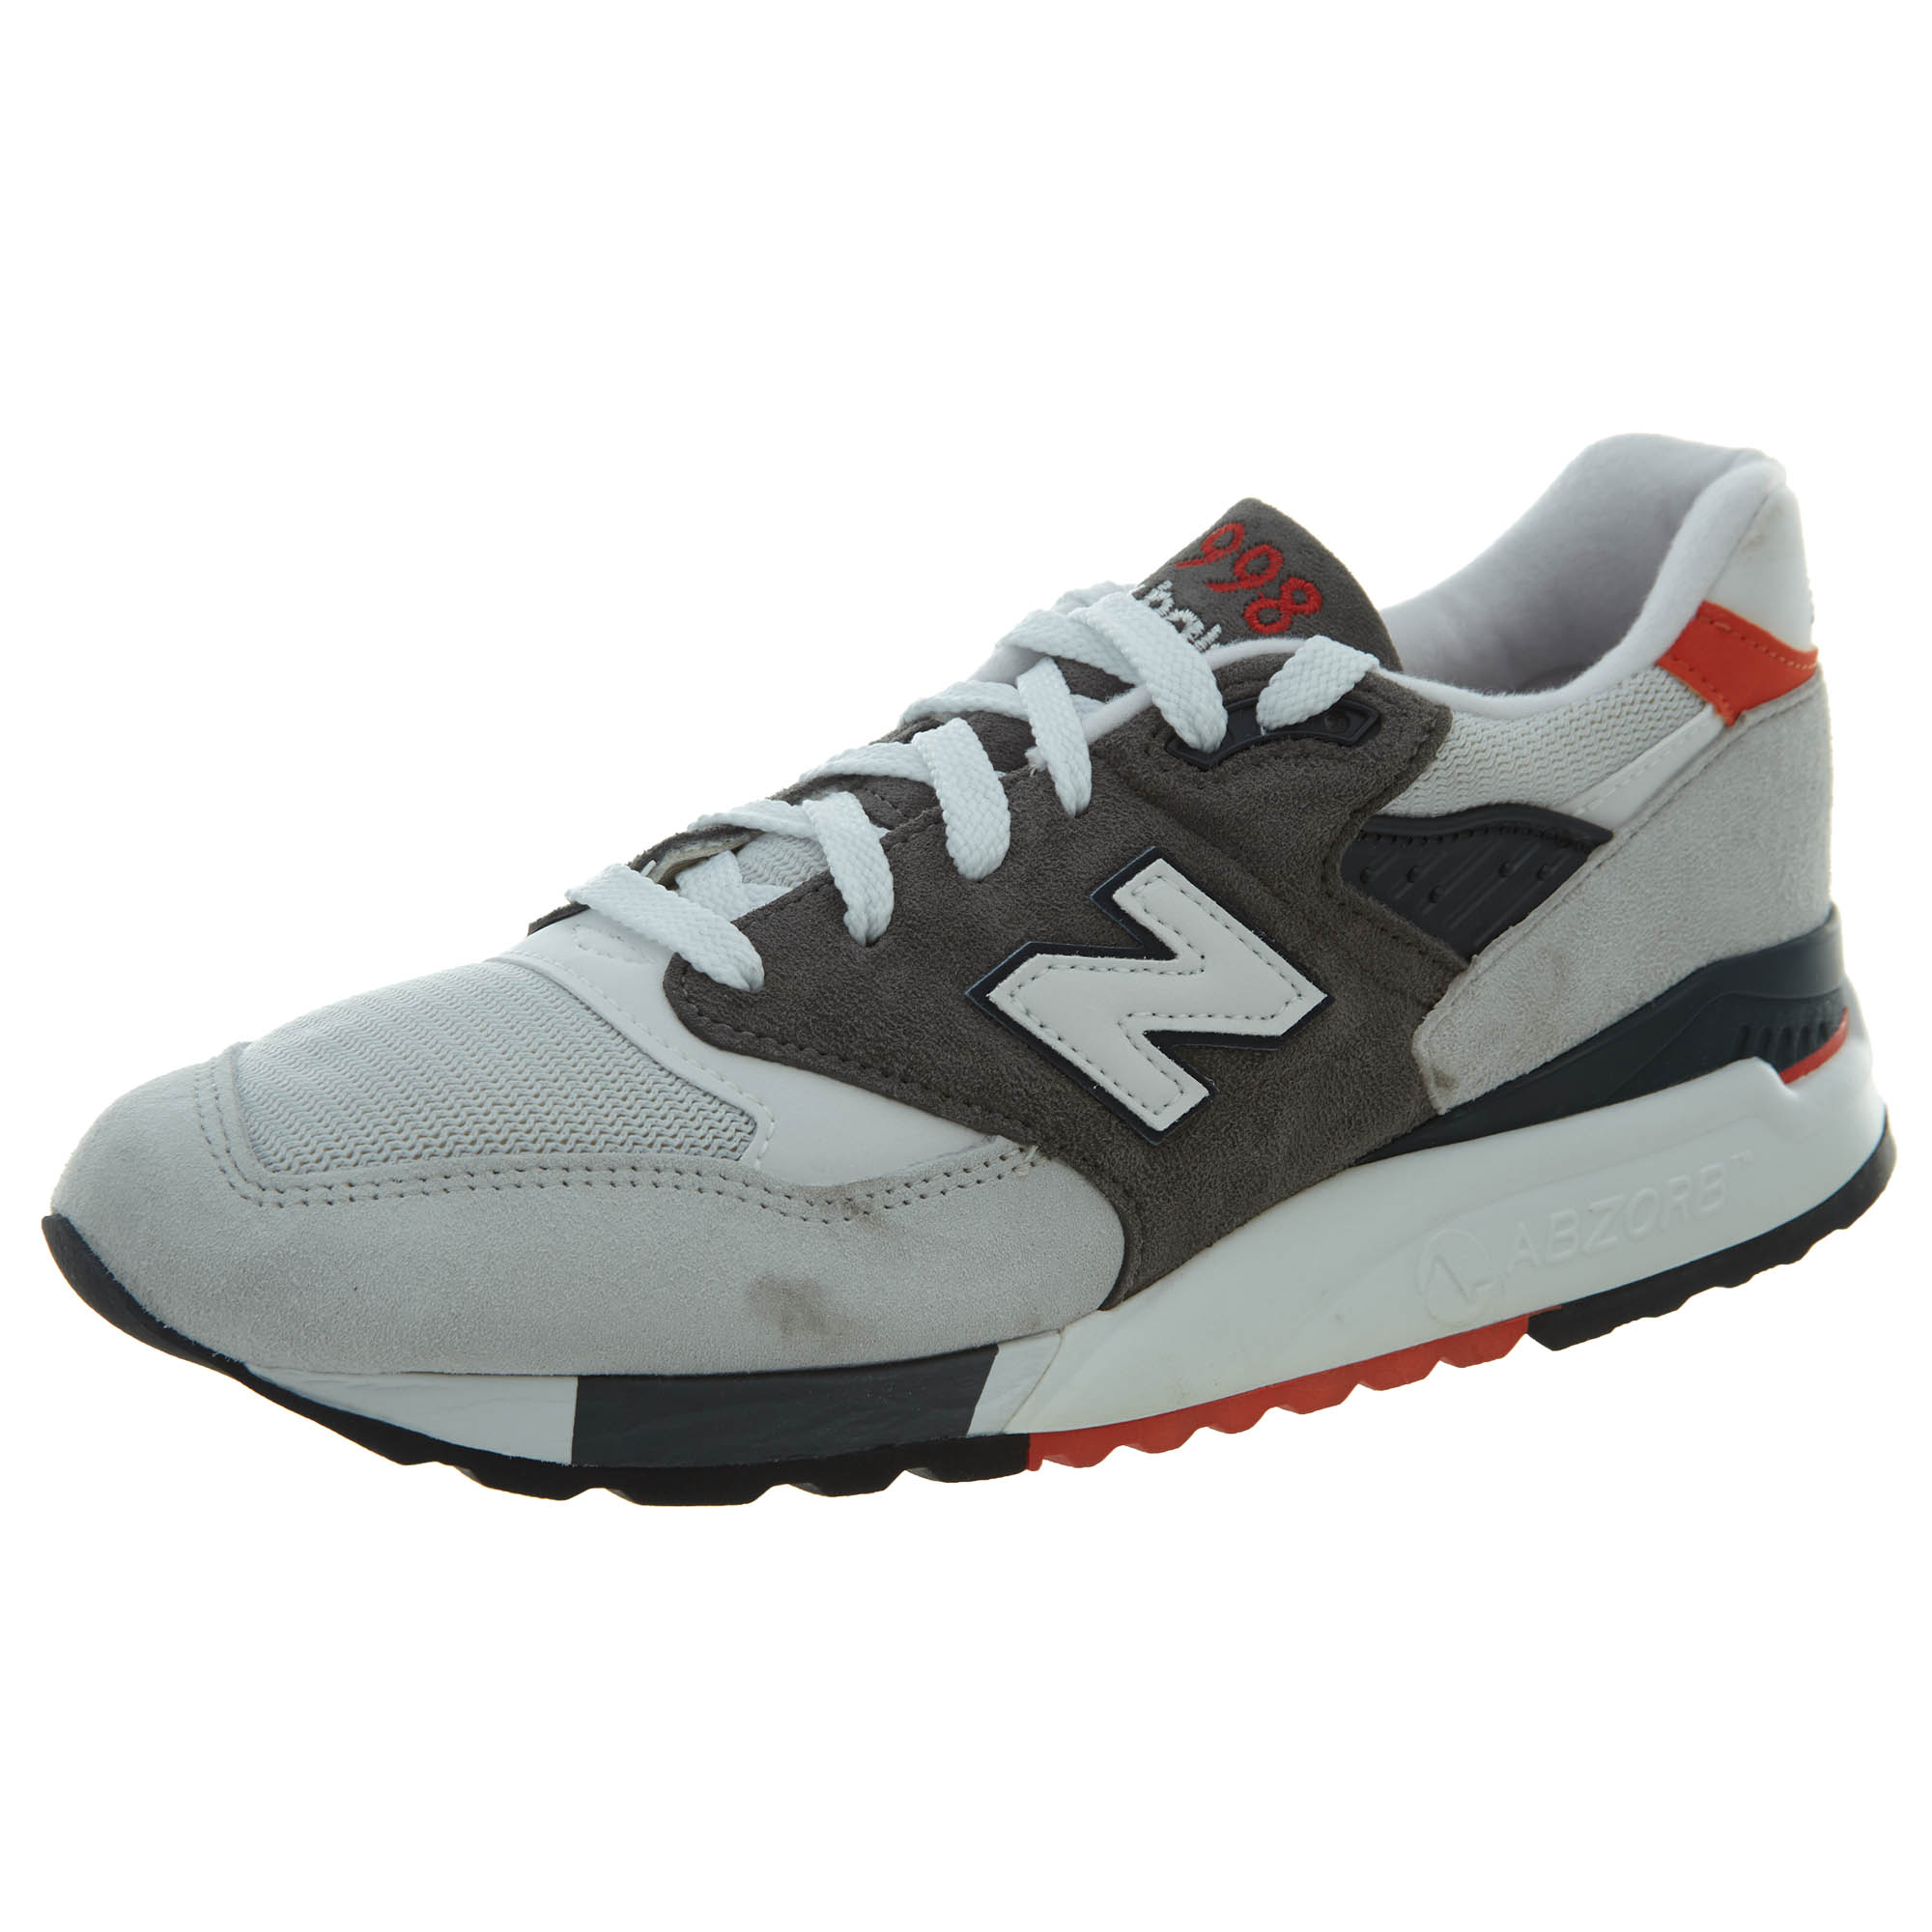 48fbe34f1b Details about New Balance Mens 998 Classic Running Shoes Light Grey/Black  M998-CREA